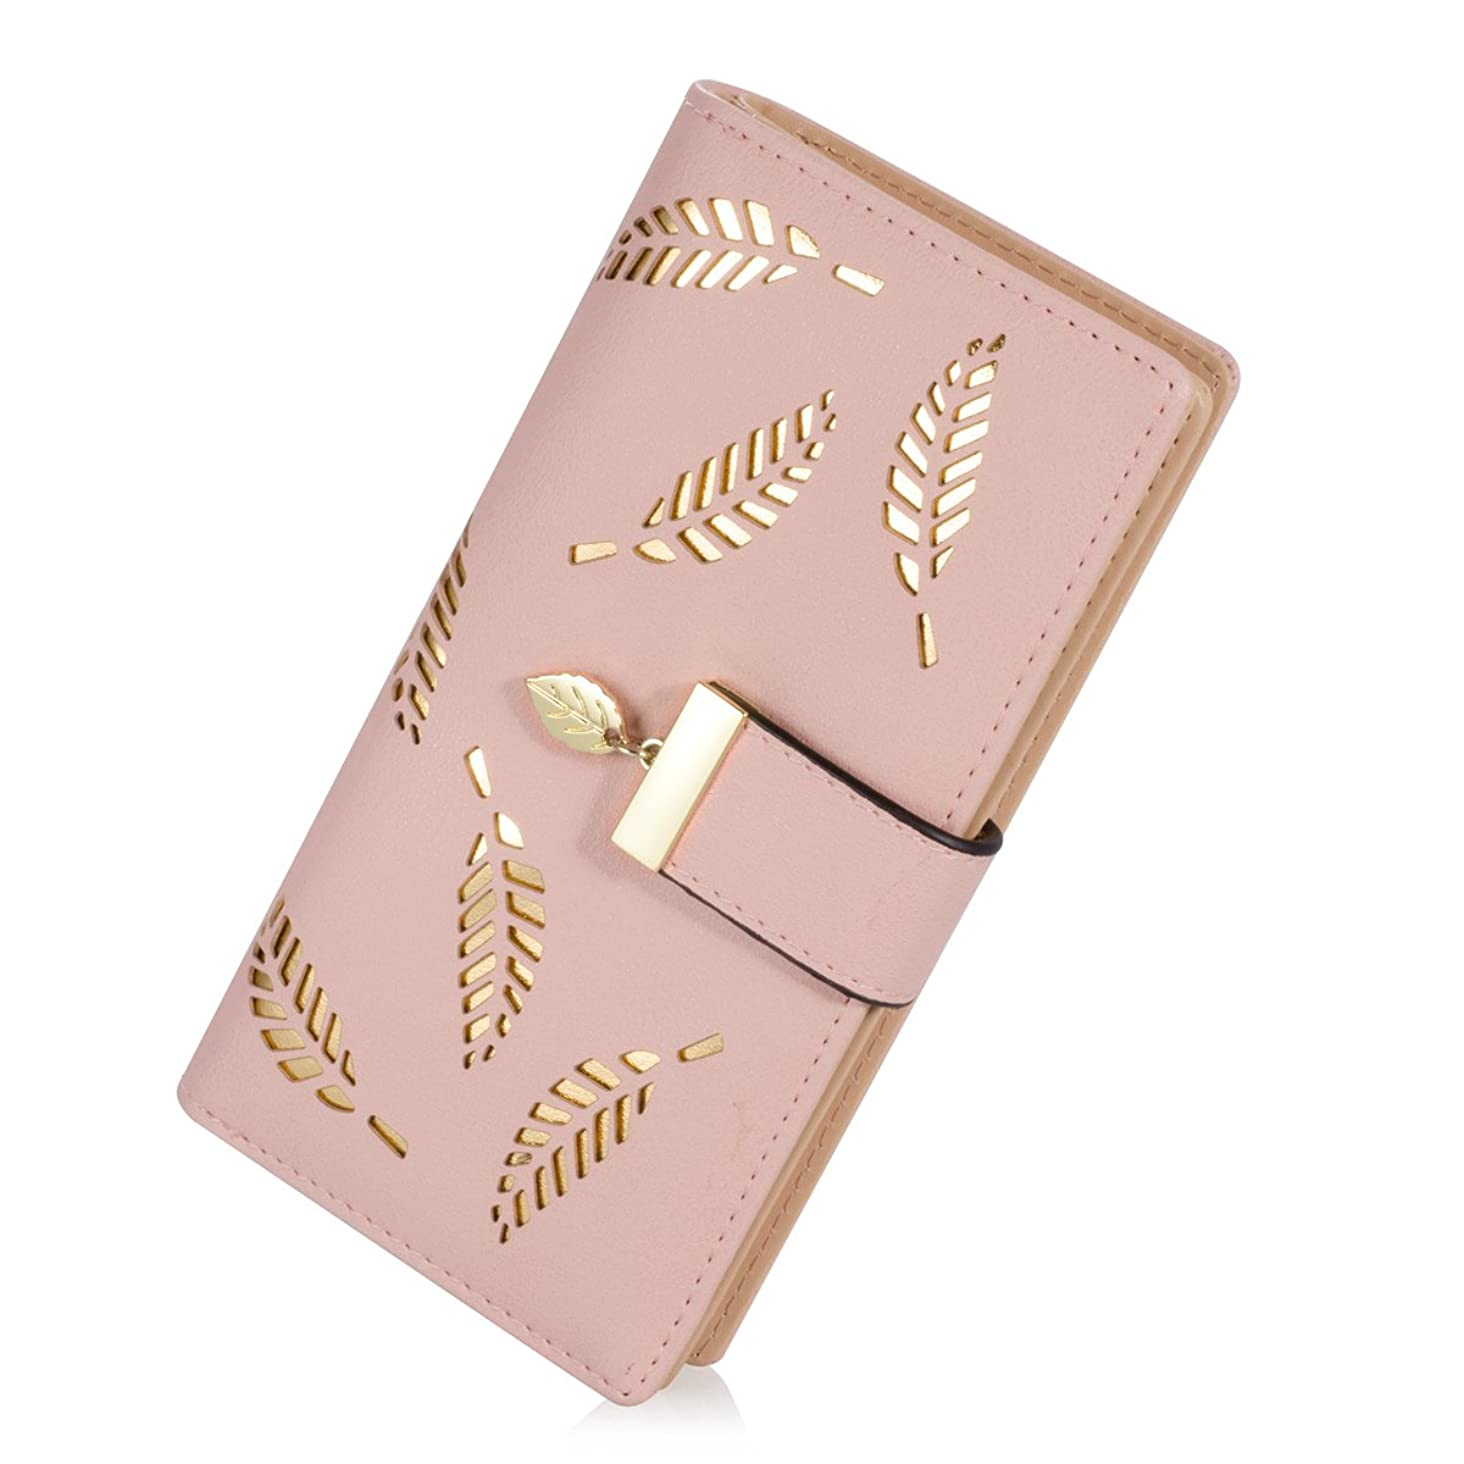 PGXT Women's Long Leather Card Holder Purse Zipper Buckle Elegant Clutch Wallet